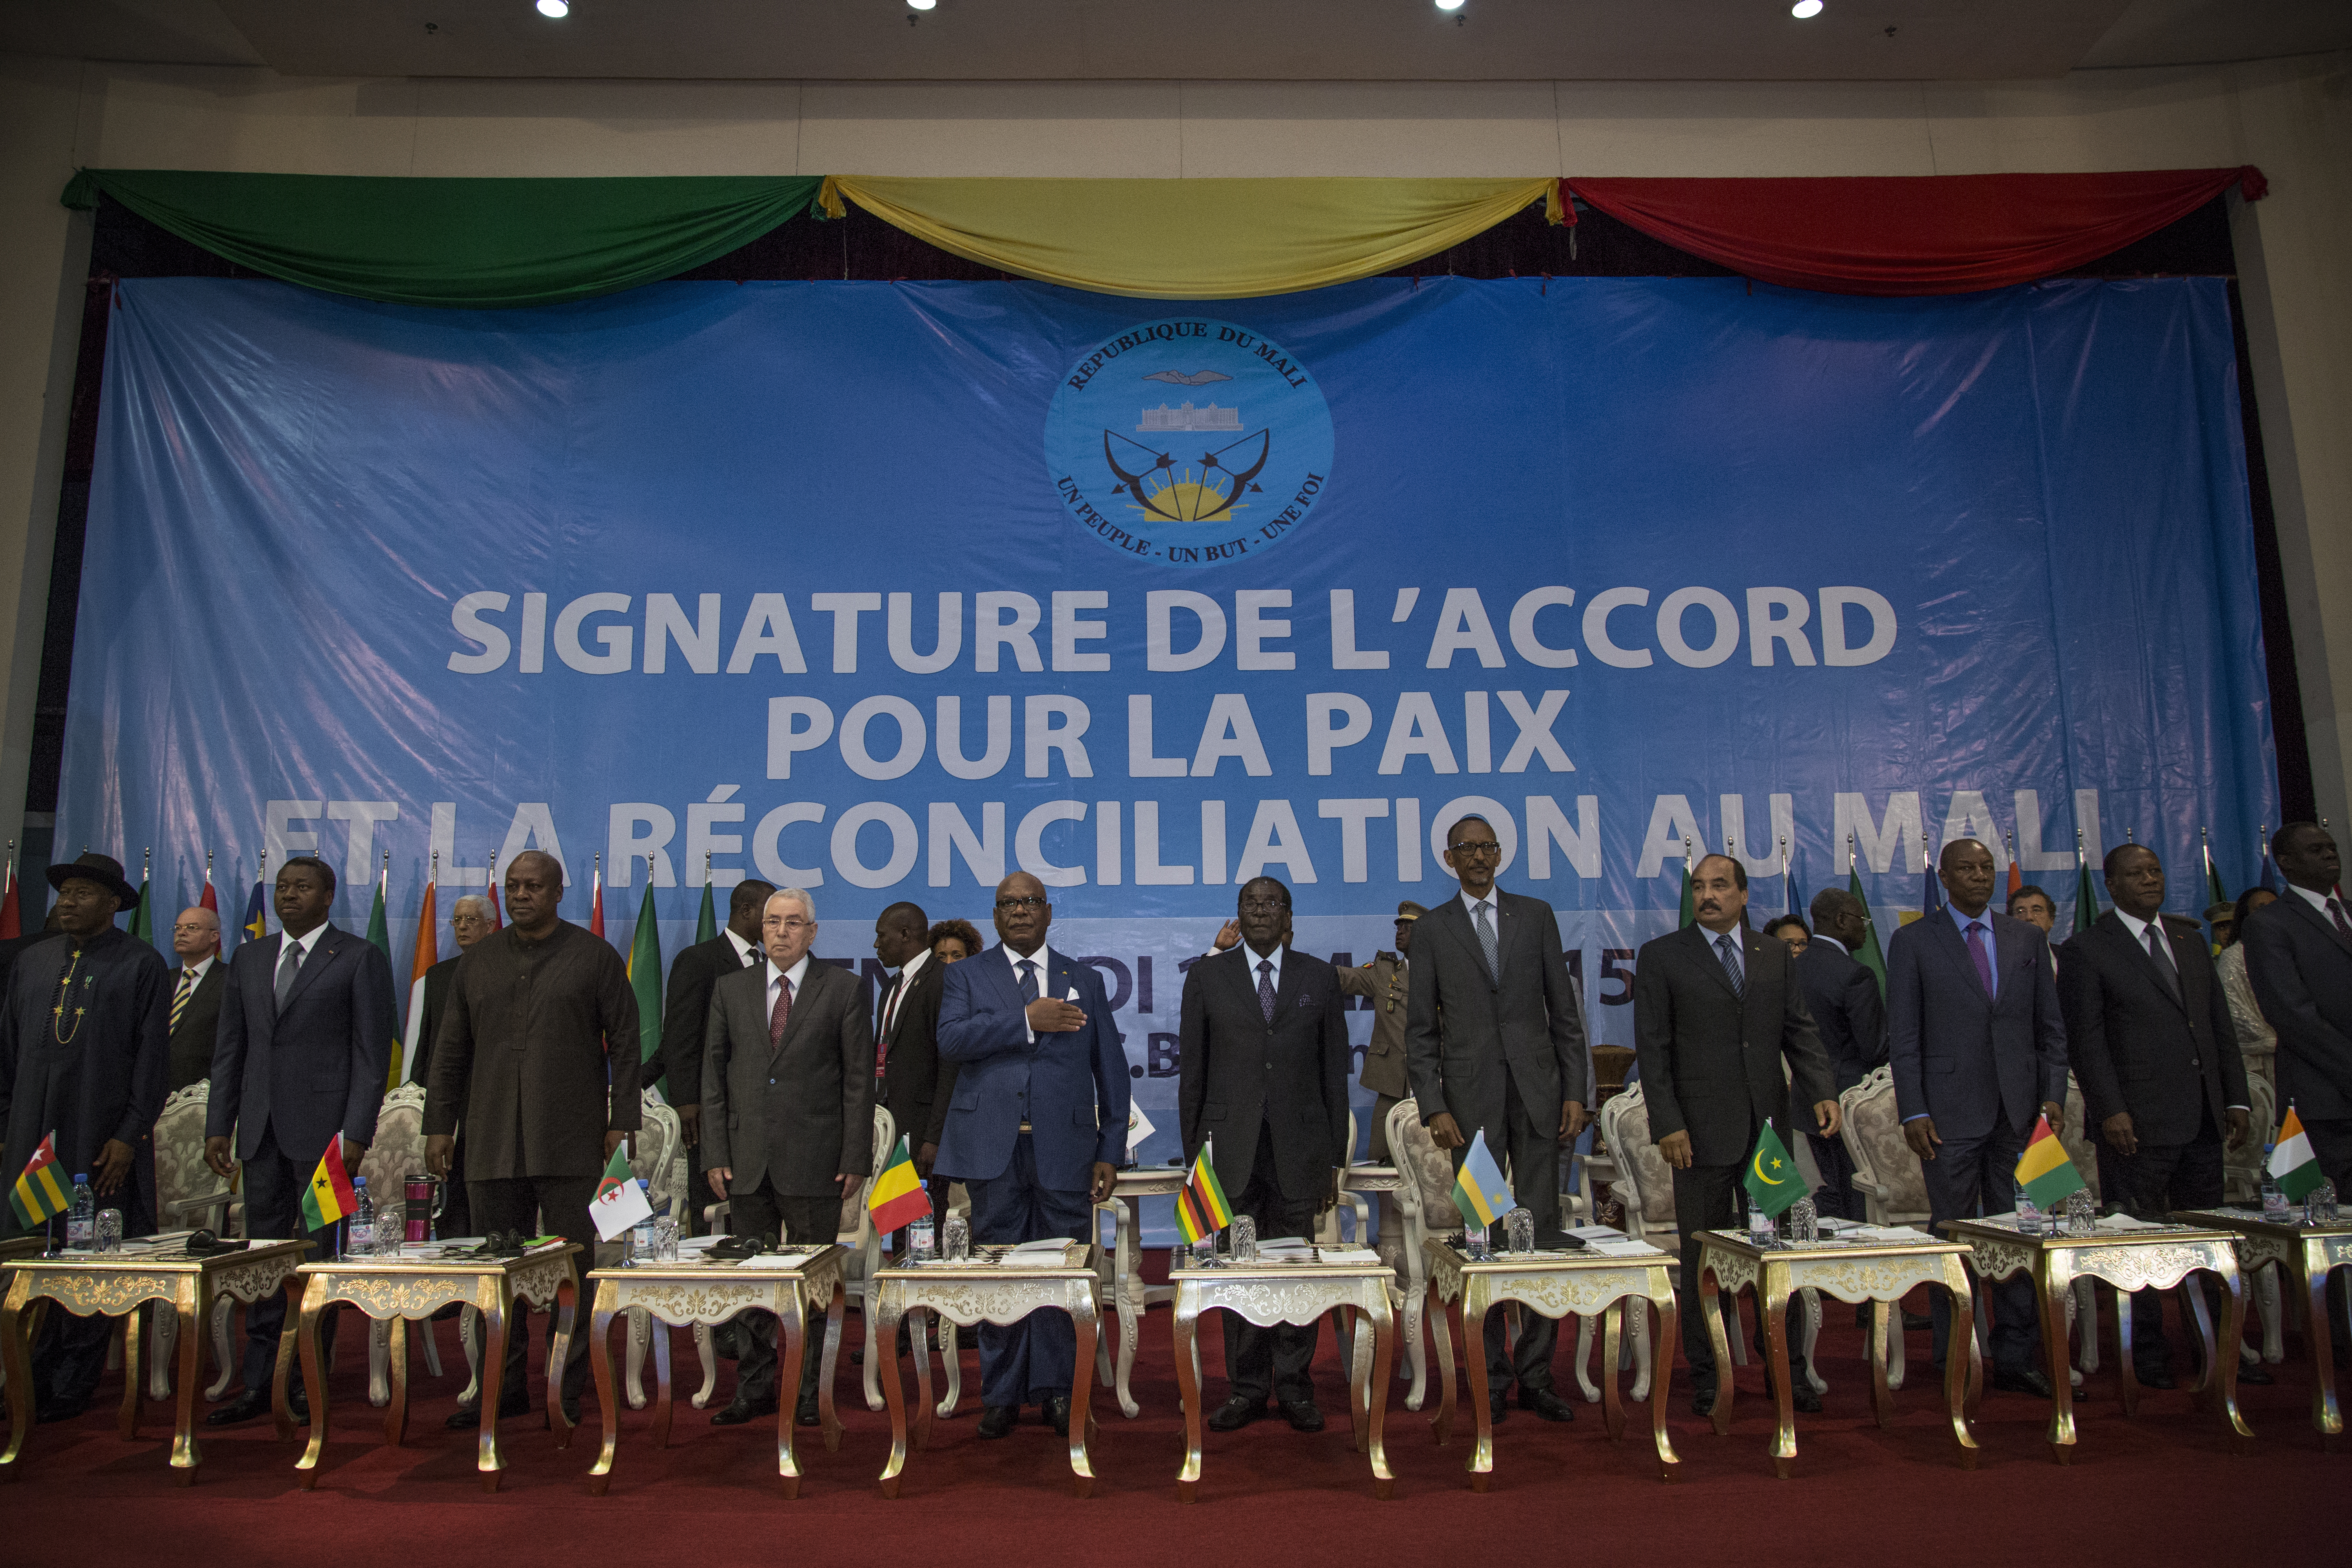 African leaders attend signing ceremony of the Peace Agreement in Mali (photo credit: UN Photo/Marco Dormino/Flickr)